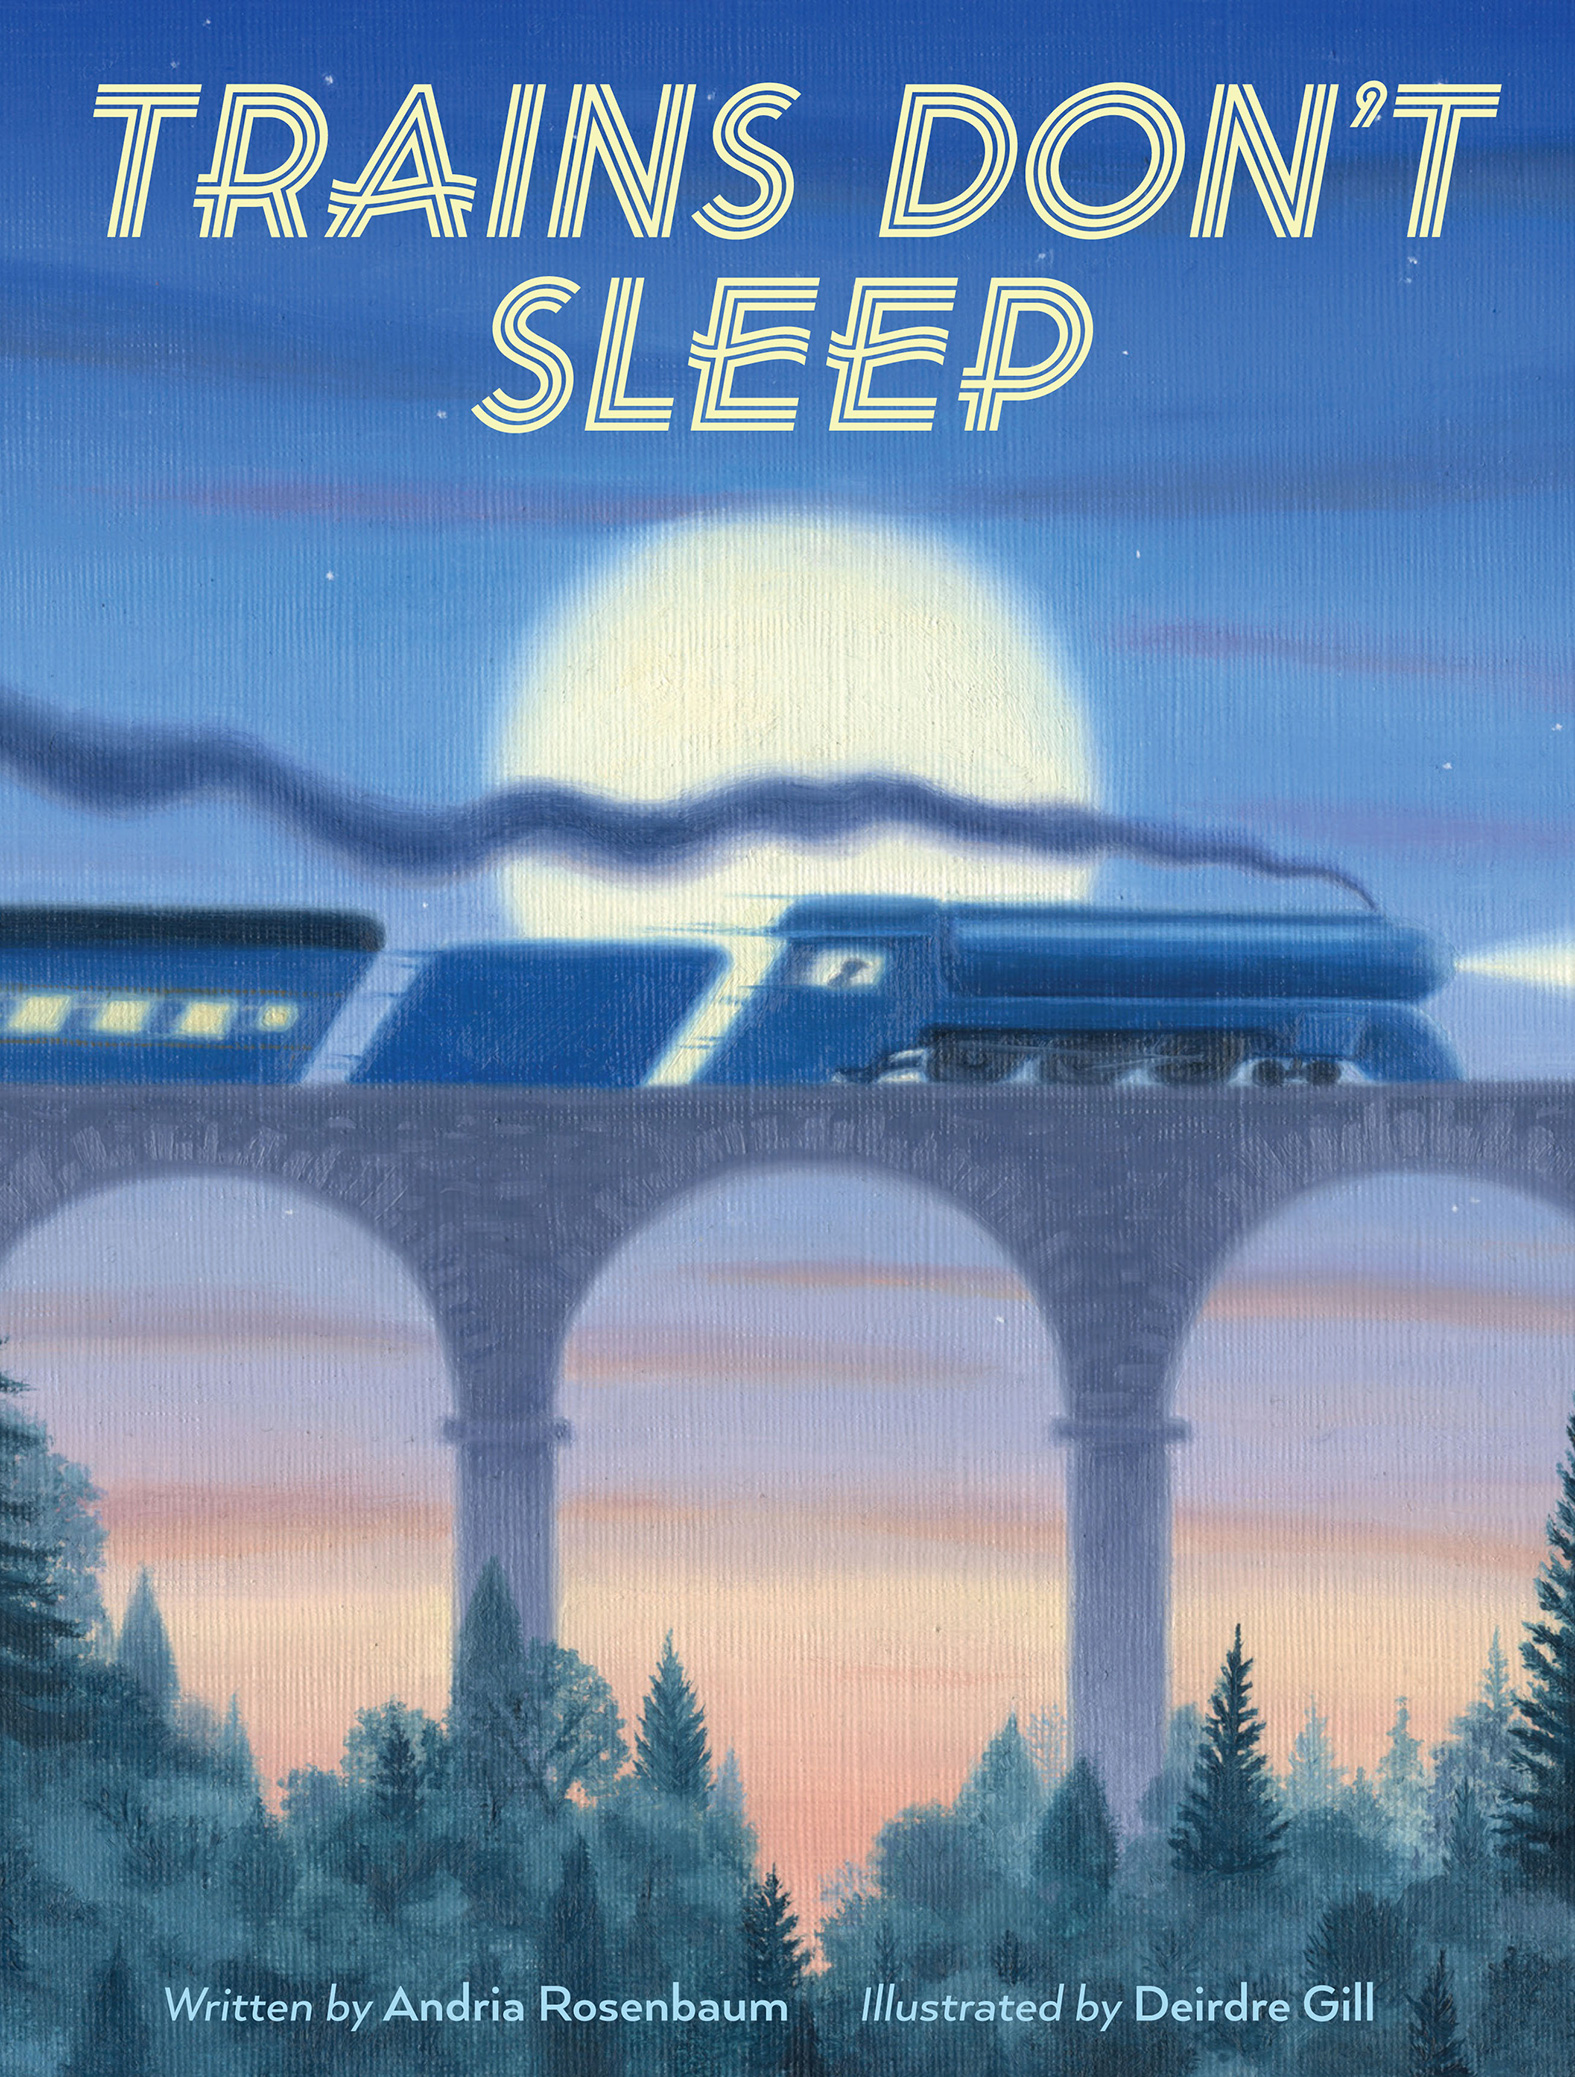 celebrate-picture-books-picture-book-review-trains-don't-sleep-cover